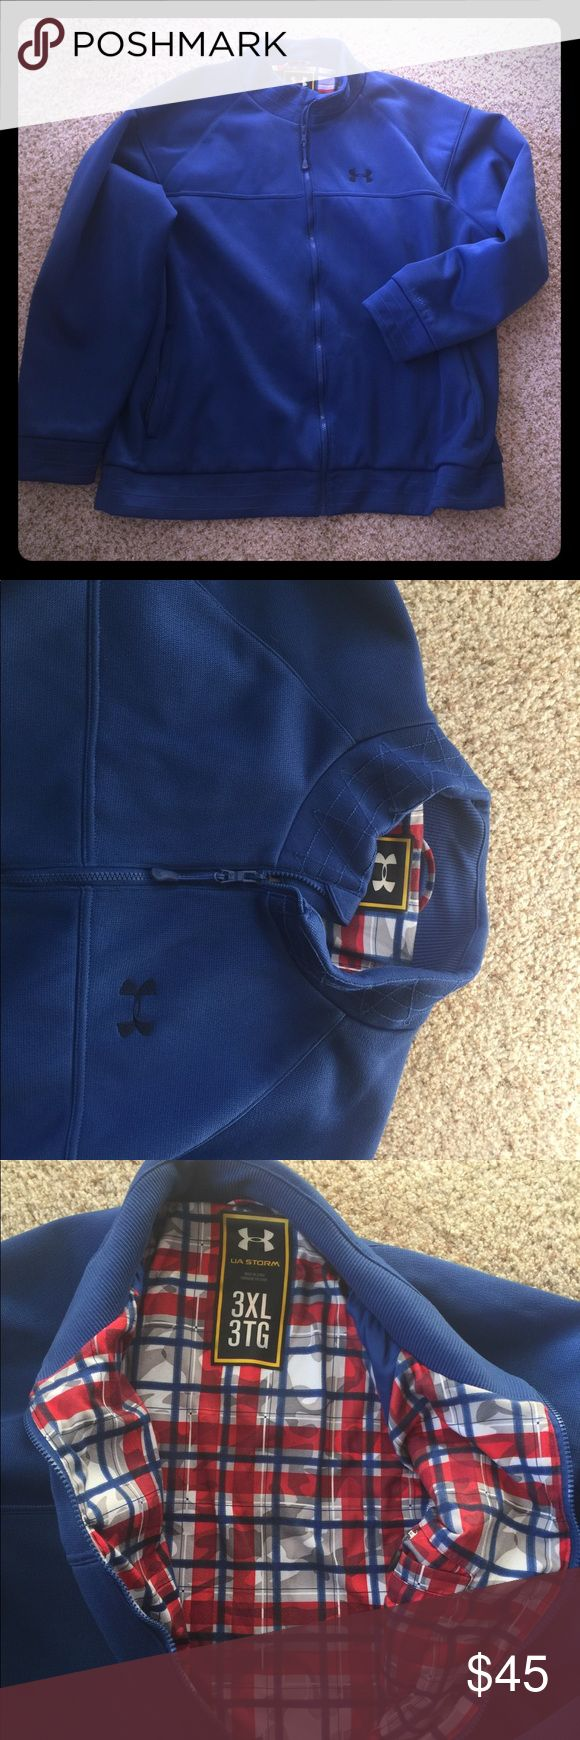 Men's Under Armour Storm 3xl Big & Tall Coat Jacke Men's Under Armour Storm Jacket in excellent condition from a smoke & per free home! I have lost about 80 pounds and the jacket doesn't fit me anymore! My loss is your gain!   Men's 3 XL , 3X, 3XL XXXL Under Armour Jackets & Coats Ski & Snowboard